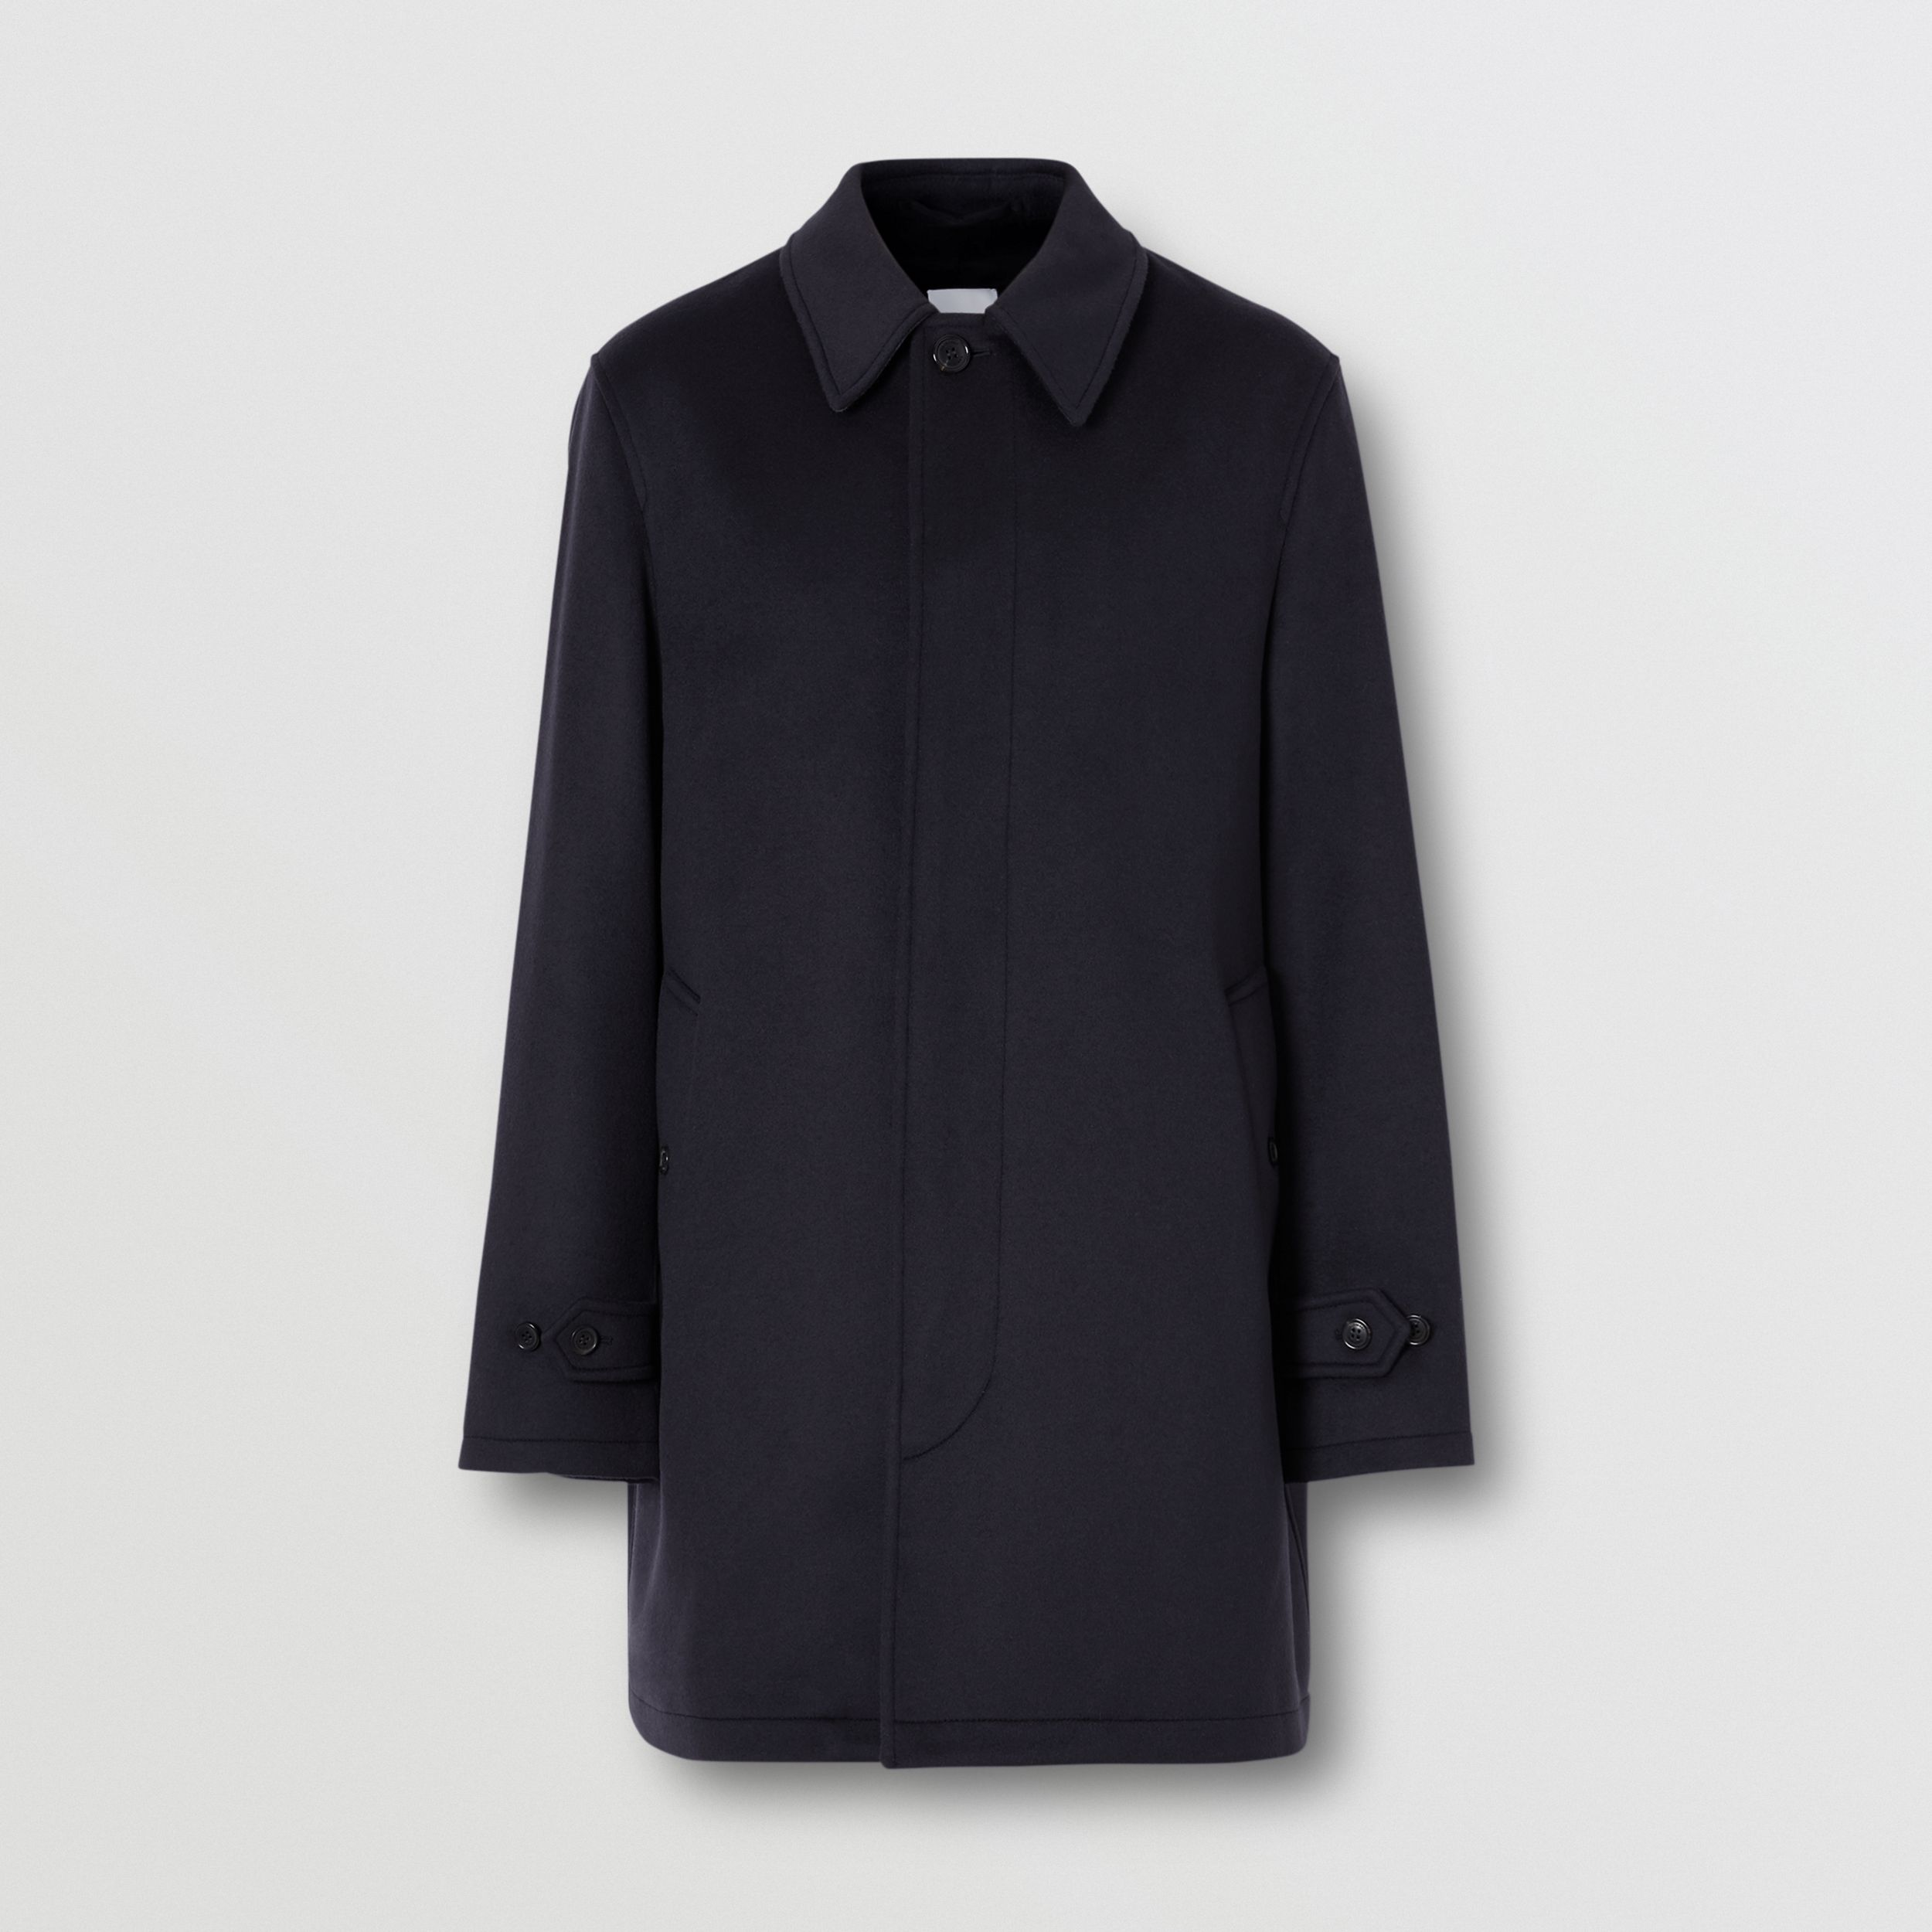 Wool Cashmere Car Coat in Navy - Men | Burberry - 4